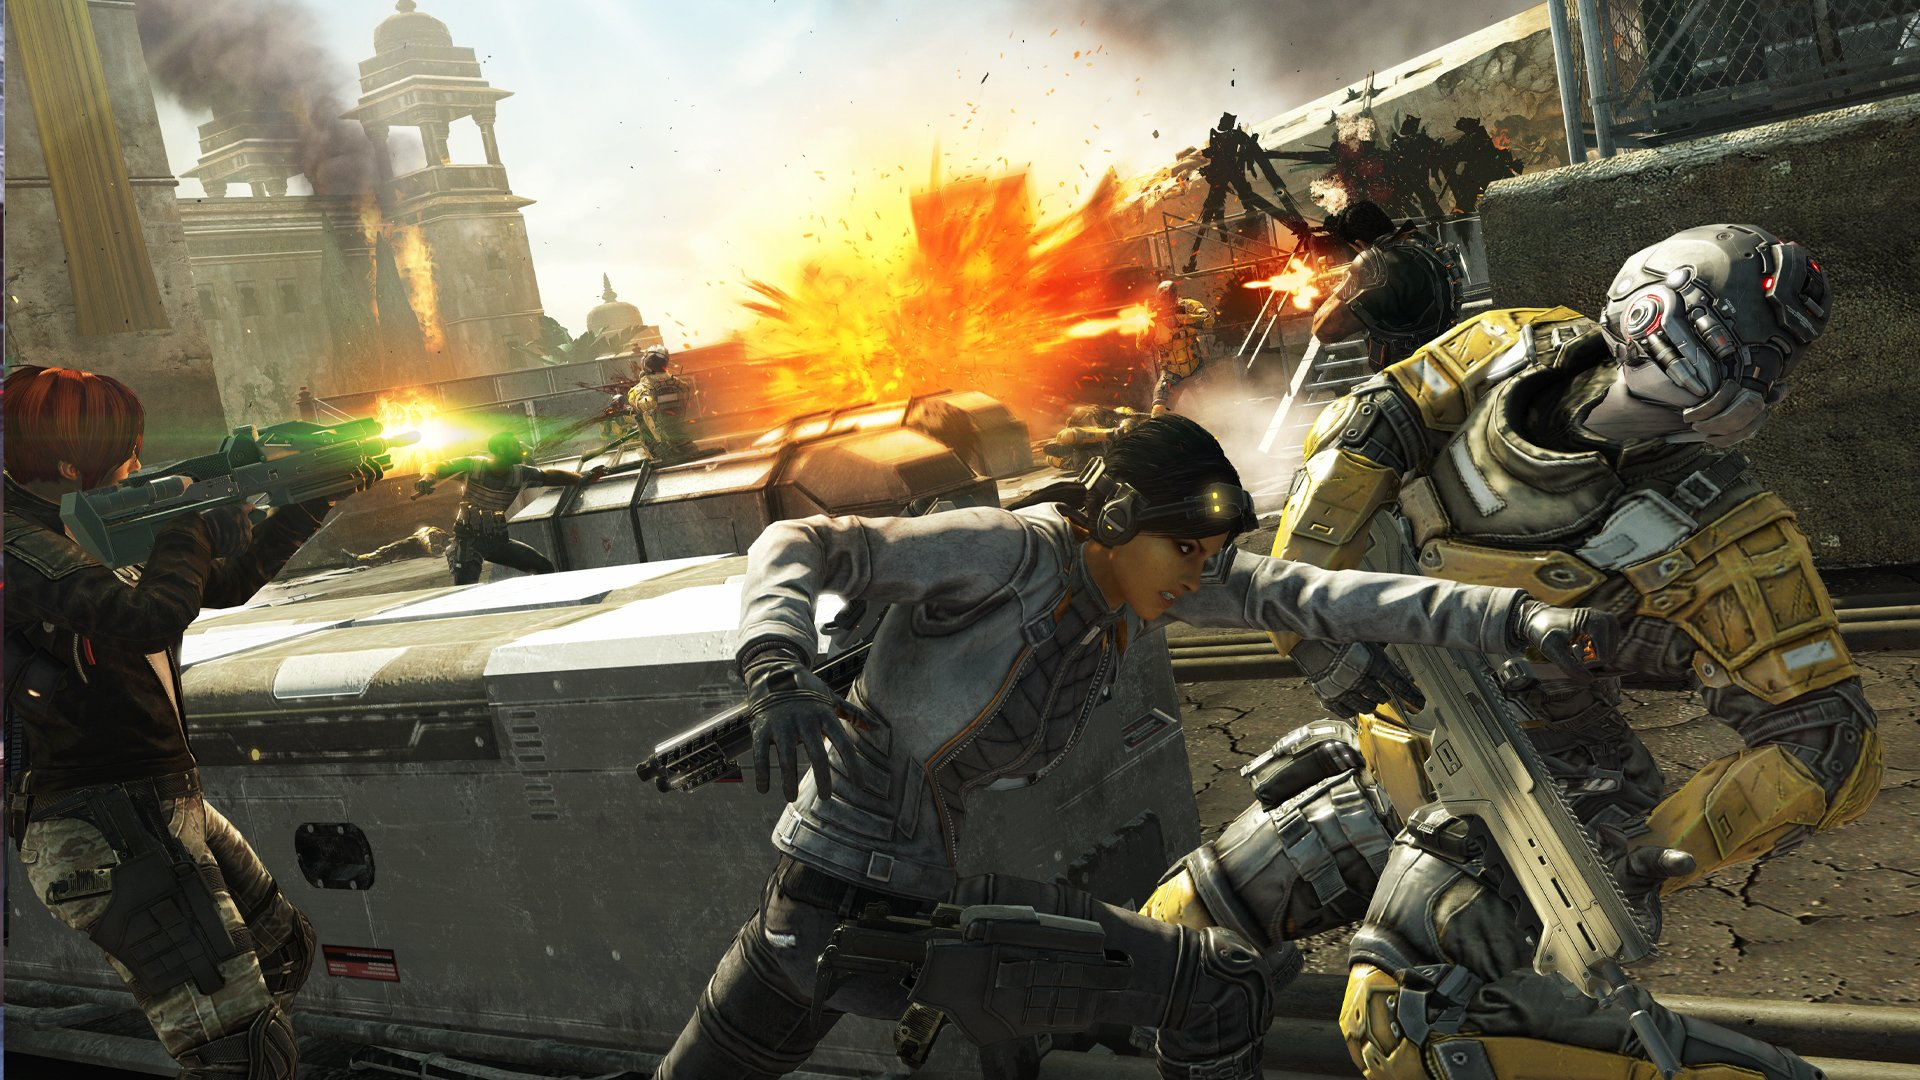 Fuse will be available on Xbox 360 and PlayStation 3 this March.